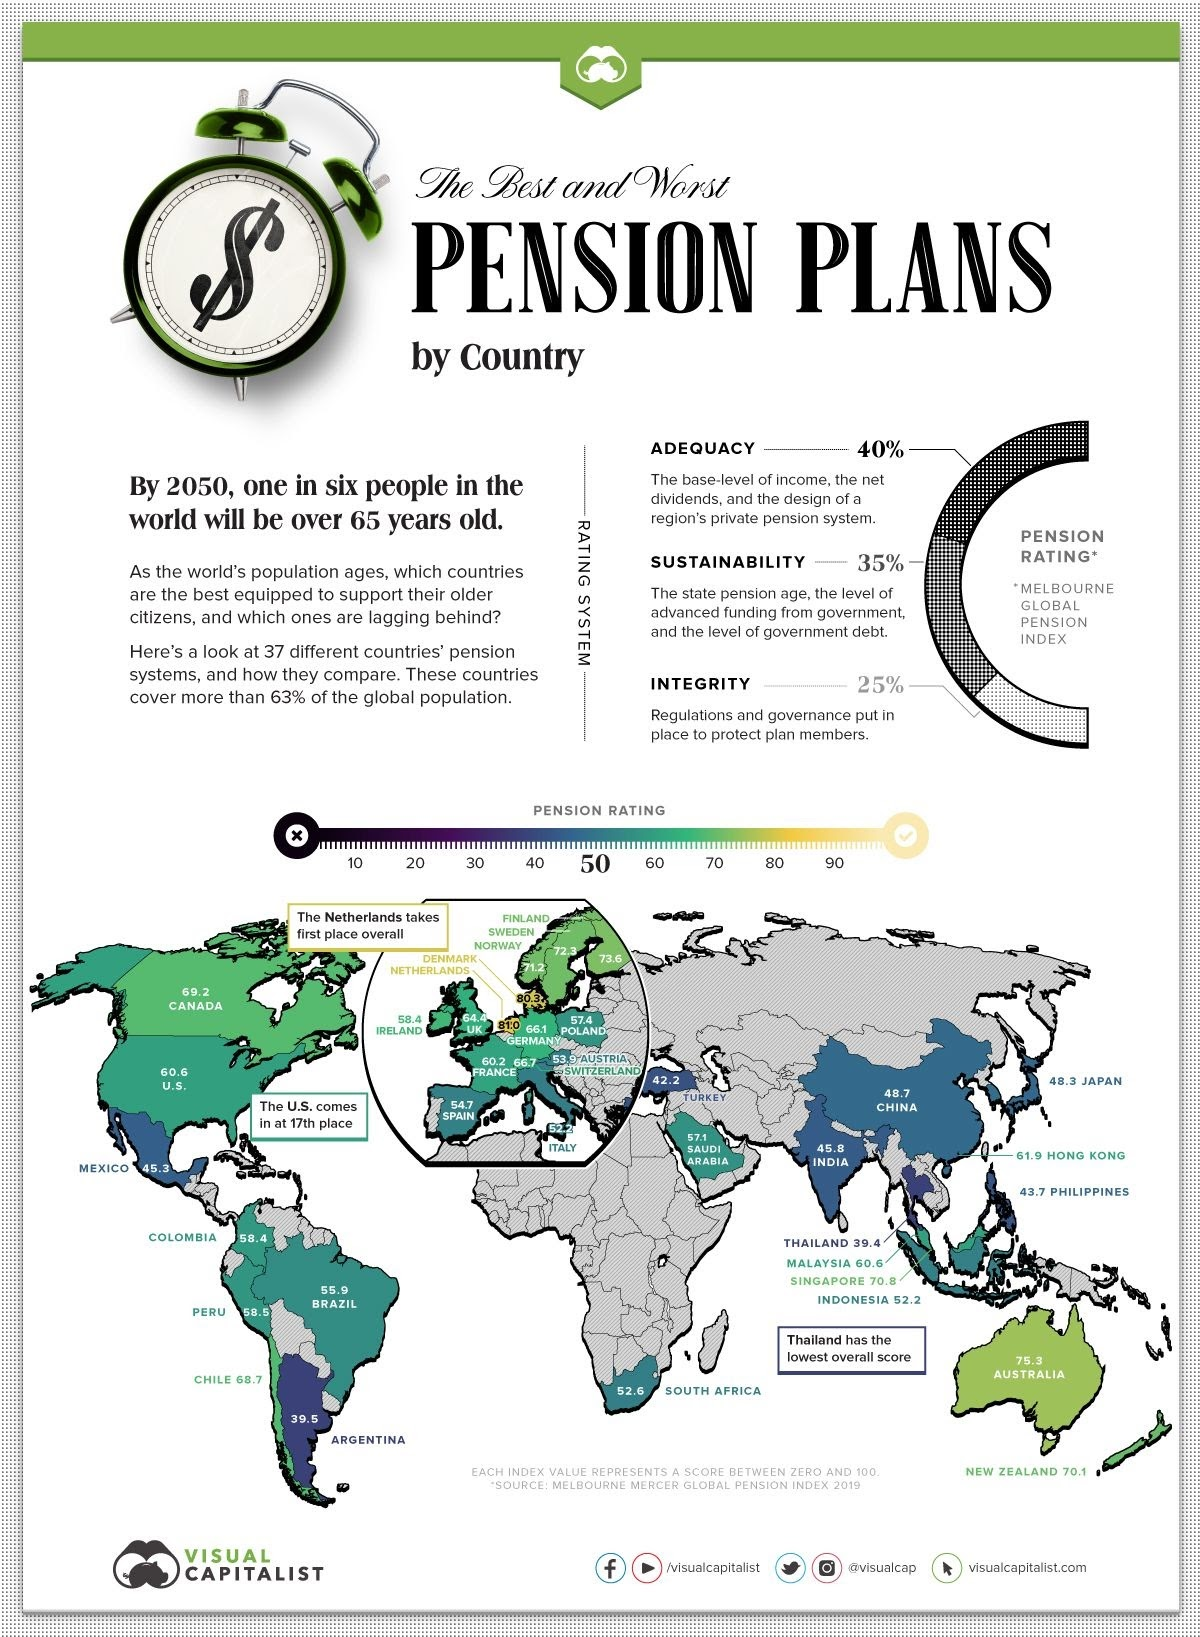 Ranked: The Best and Worst Pension Plans, by Country #Infographic